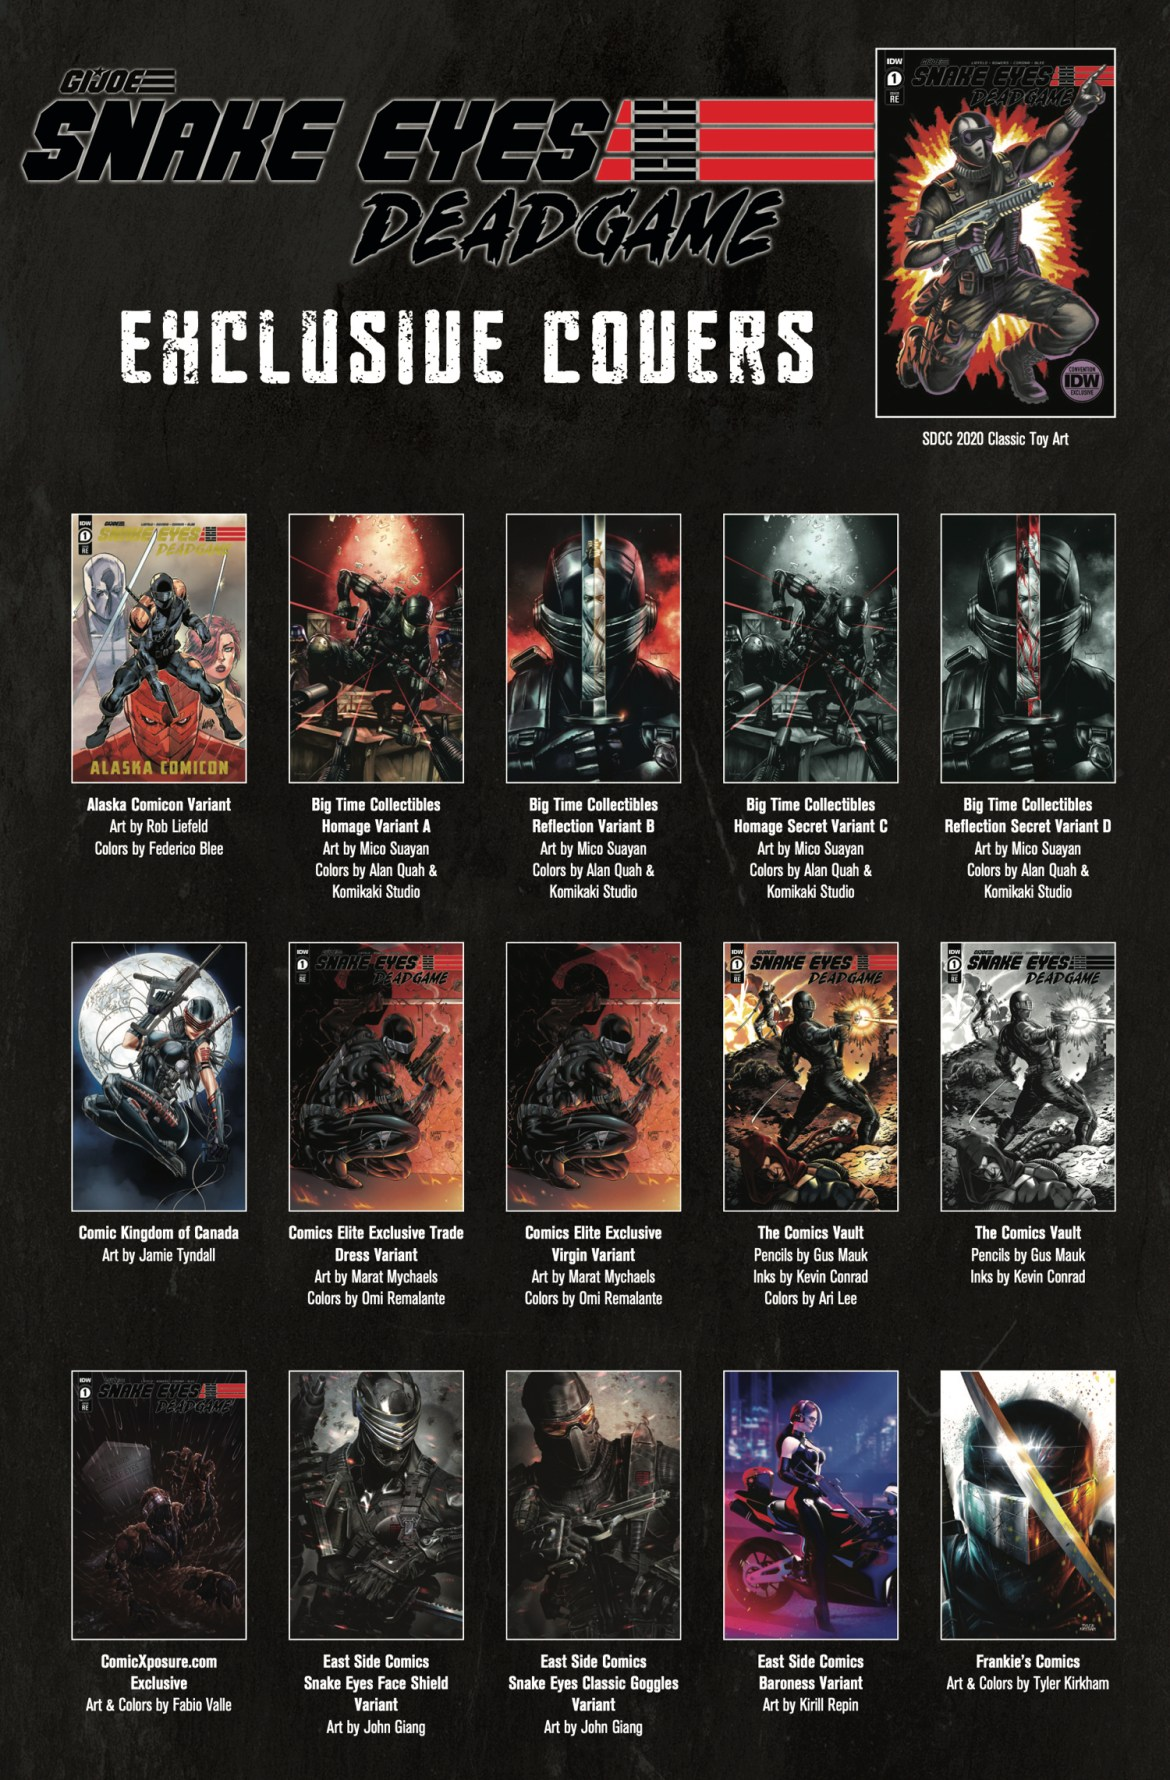 05a6e8ce-f19c-4963-aa5a-7ef425a805dc IDW's SNAKE EYES: DEADGAME will feature 36 exclusive covers